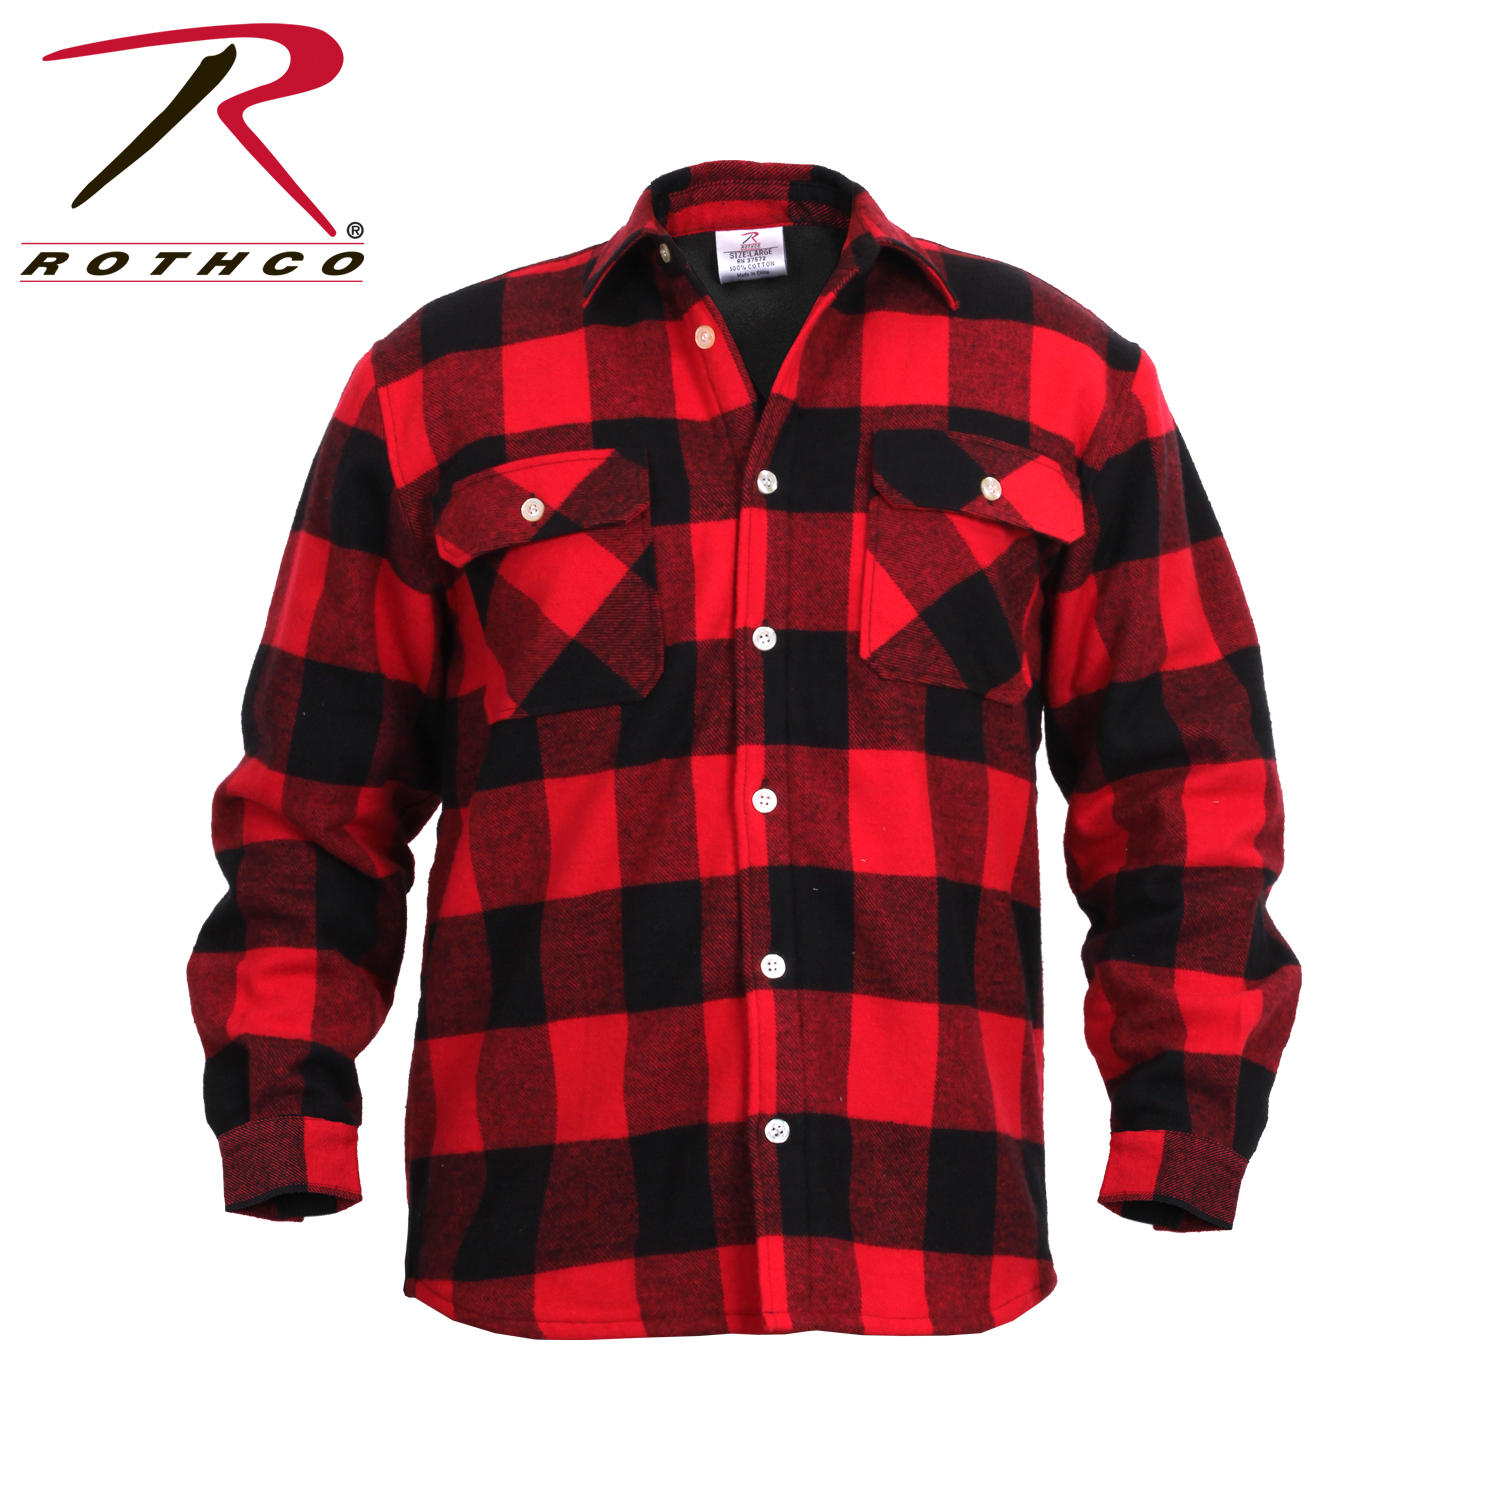 a781bba77231b Rothco Fleece Lined Flannel Shirt